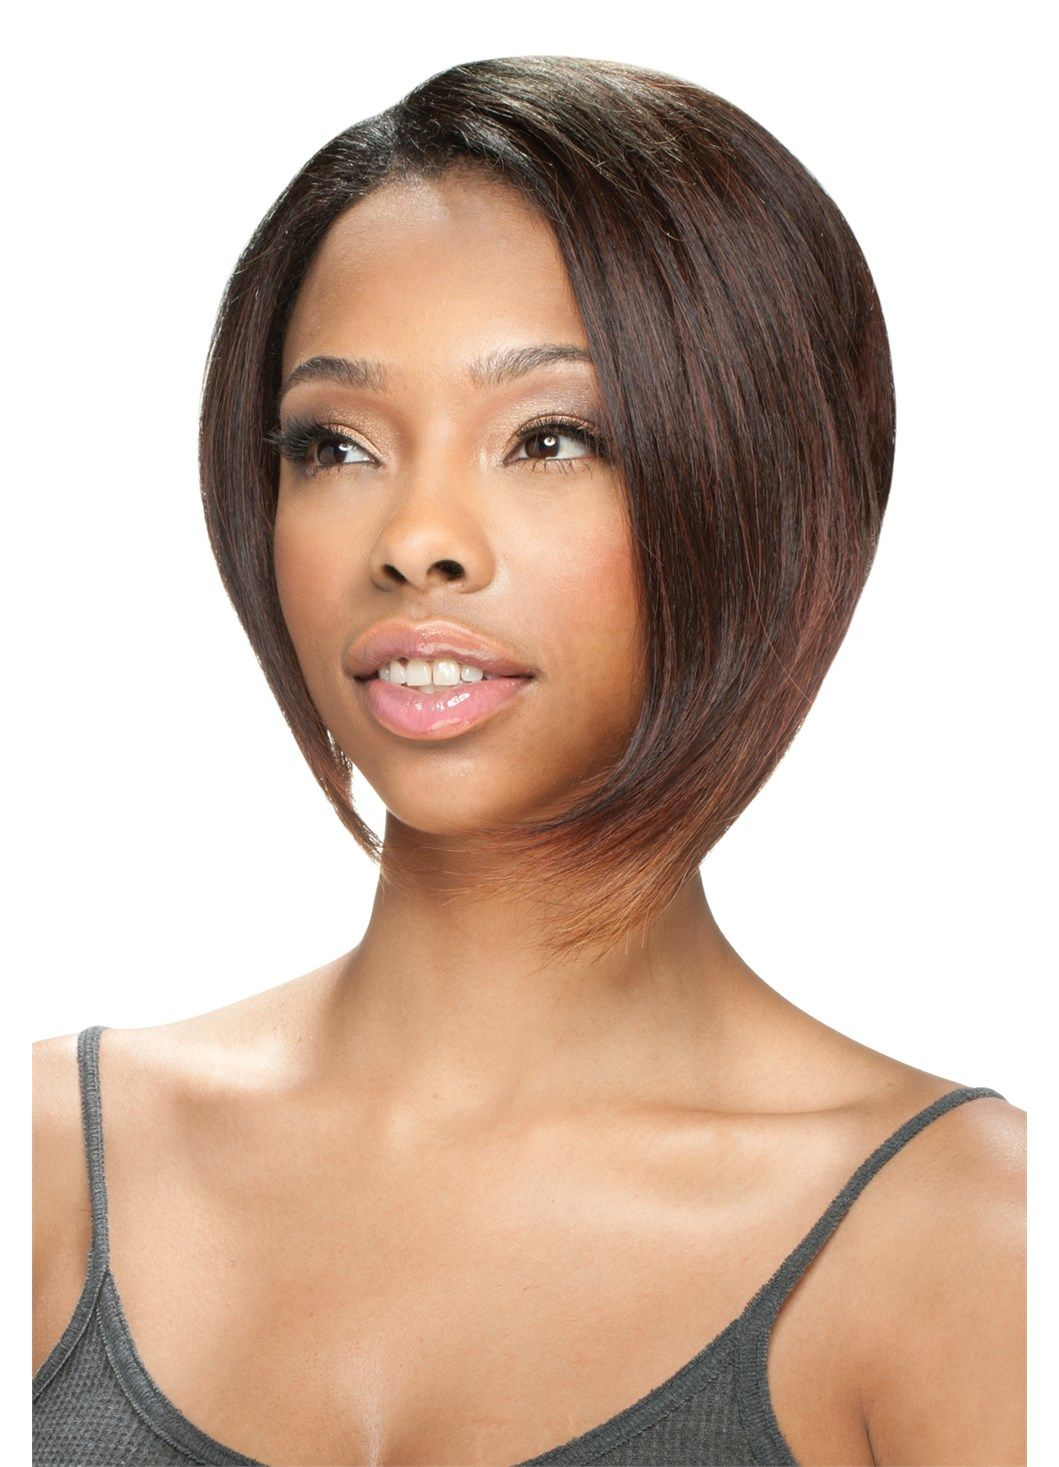 INVISIBLE PART WIG YUBRIANNA Lace front wigs, Braided